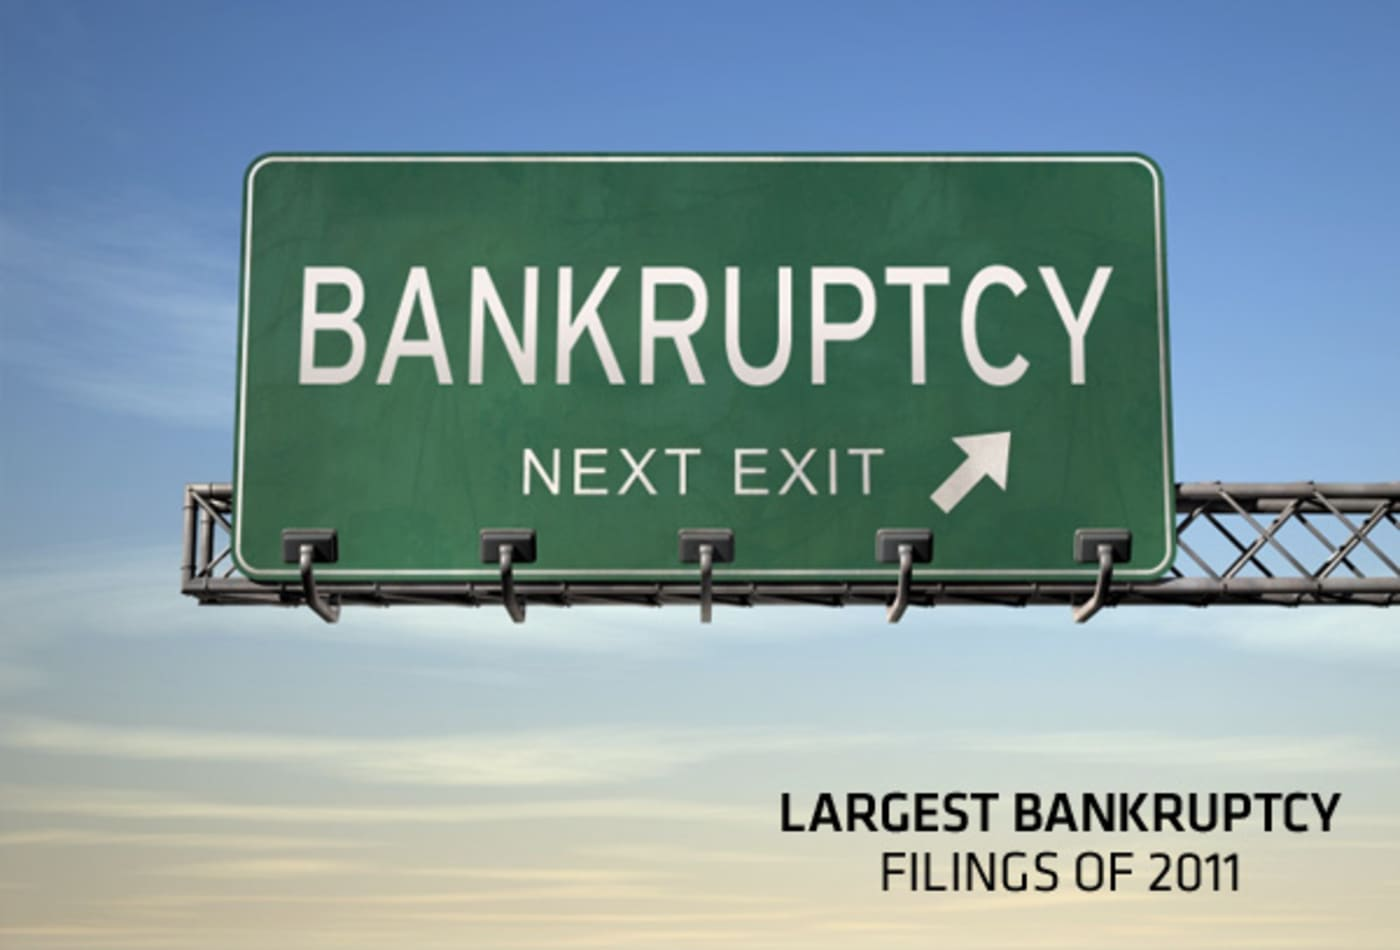 Largest-bankruptcy-filings-2011-cover.jpg